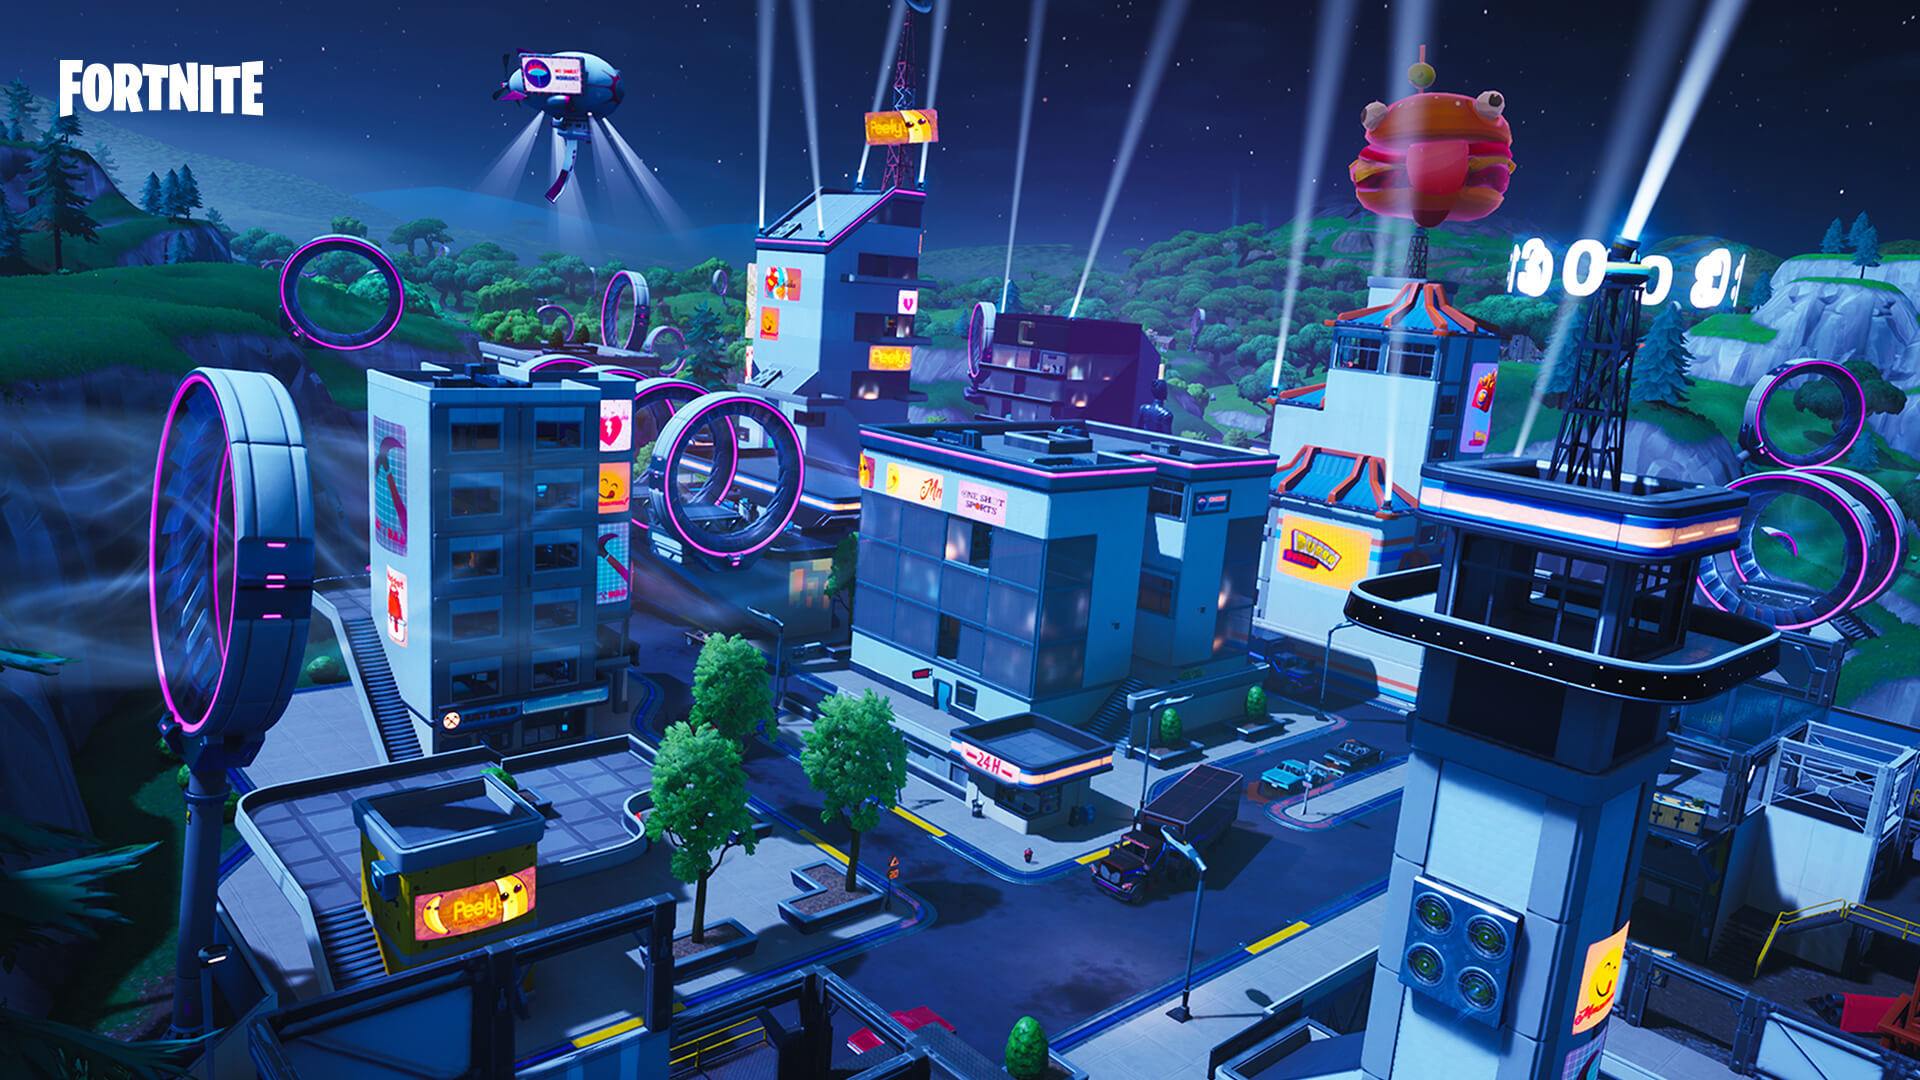 Pictures Of Fortnite Season 9 Has Landed 2 3